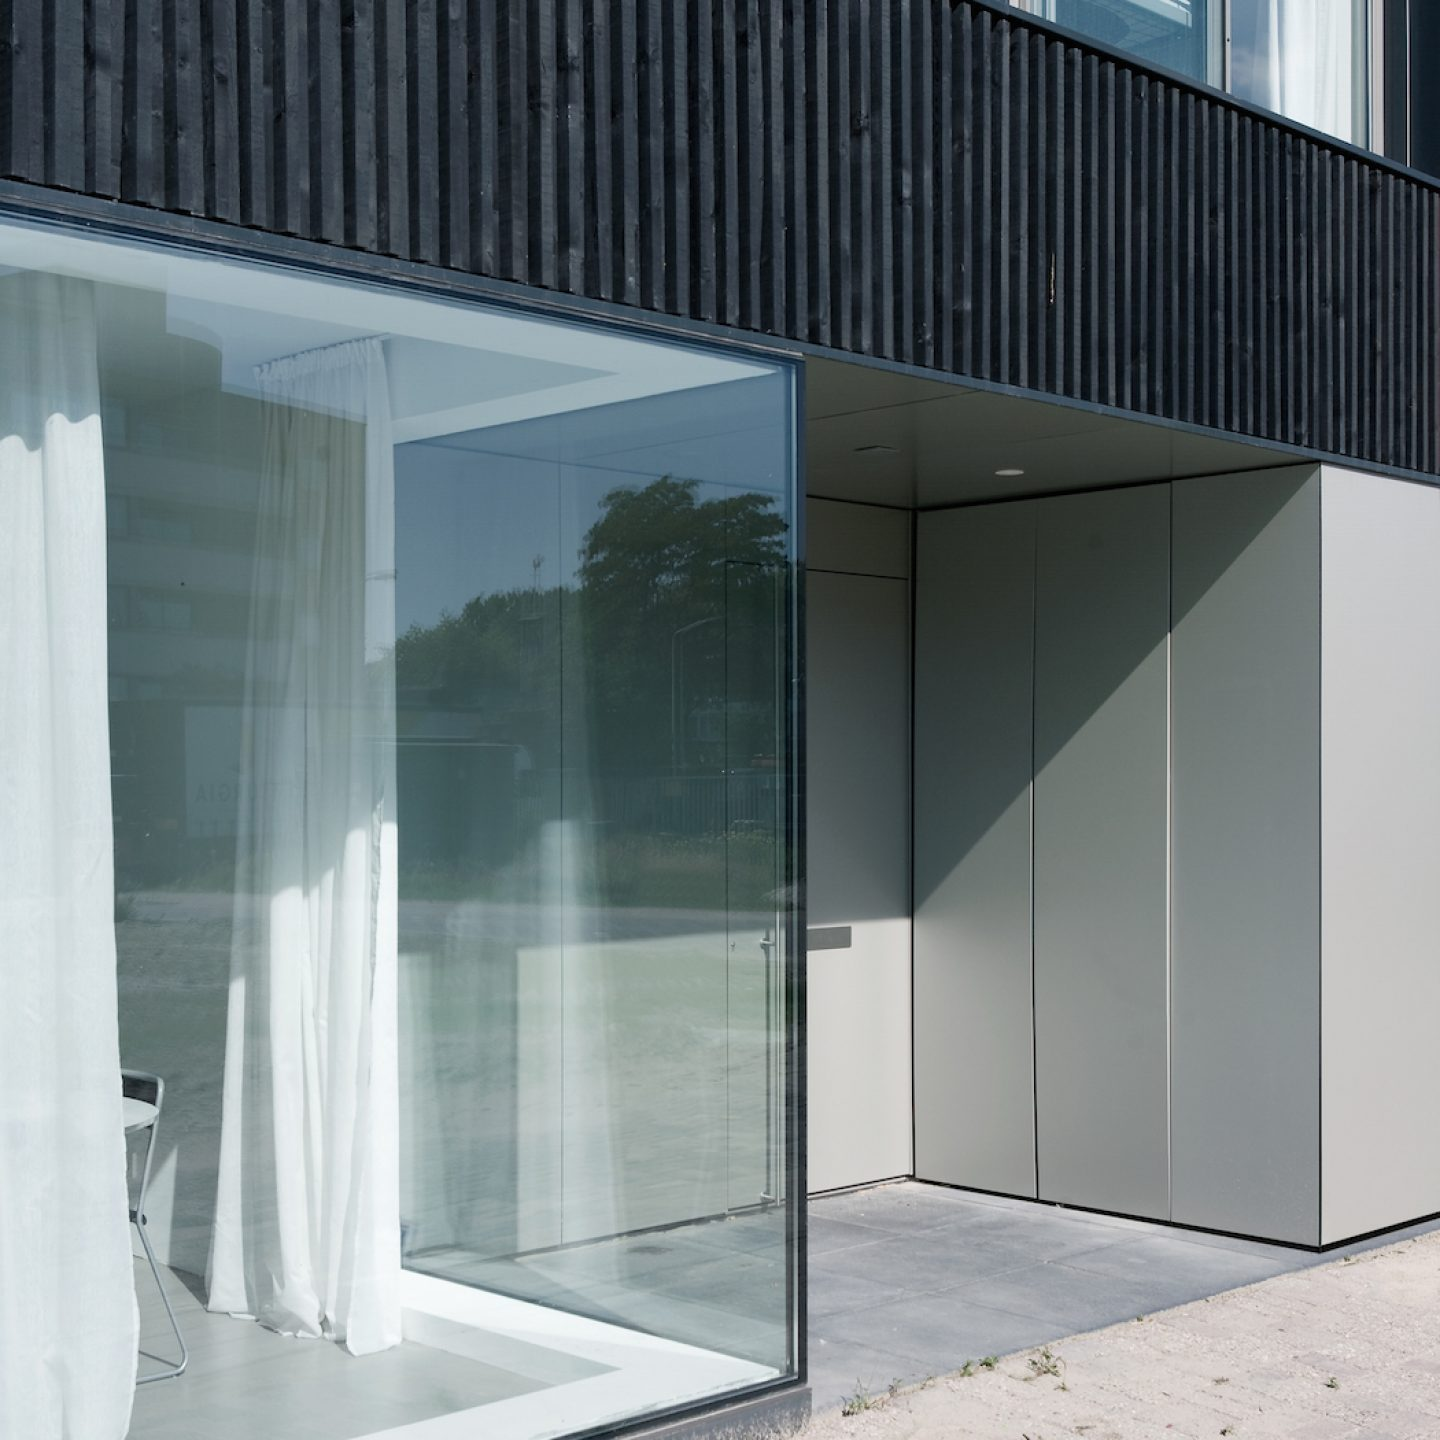 PaselKuenzelArchitects_architecture_02